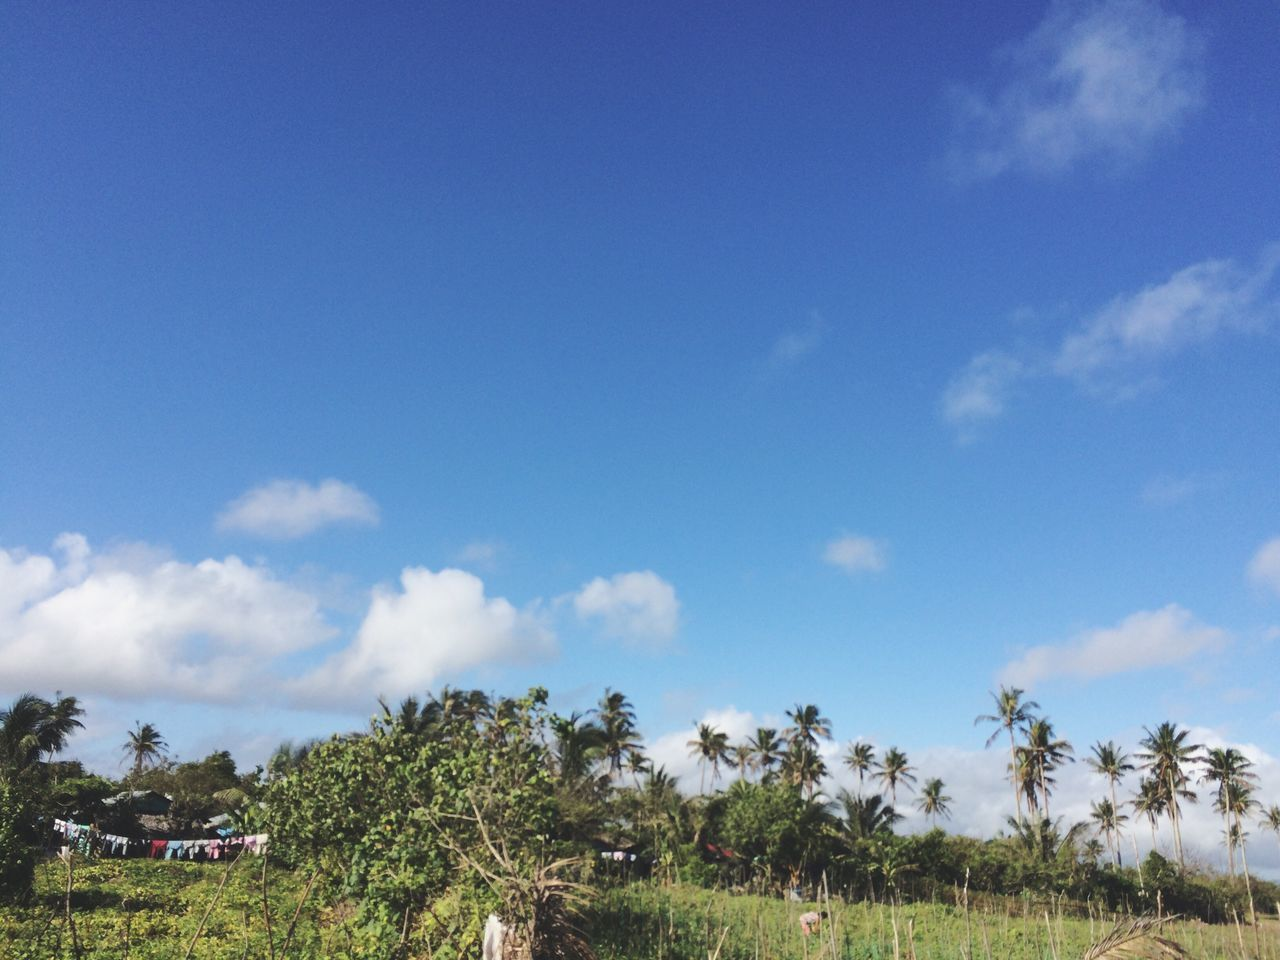 sky, tree, blue, nature, palm tree, day, beauty in nature, scenics, tranquility, outdoors, cloud - sky, growth, no people